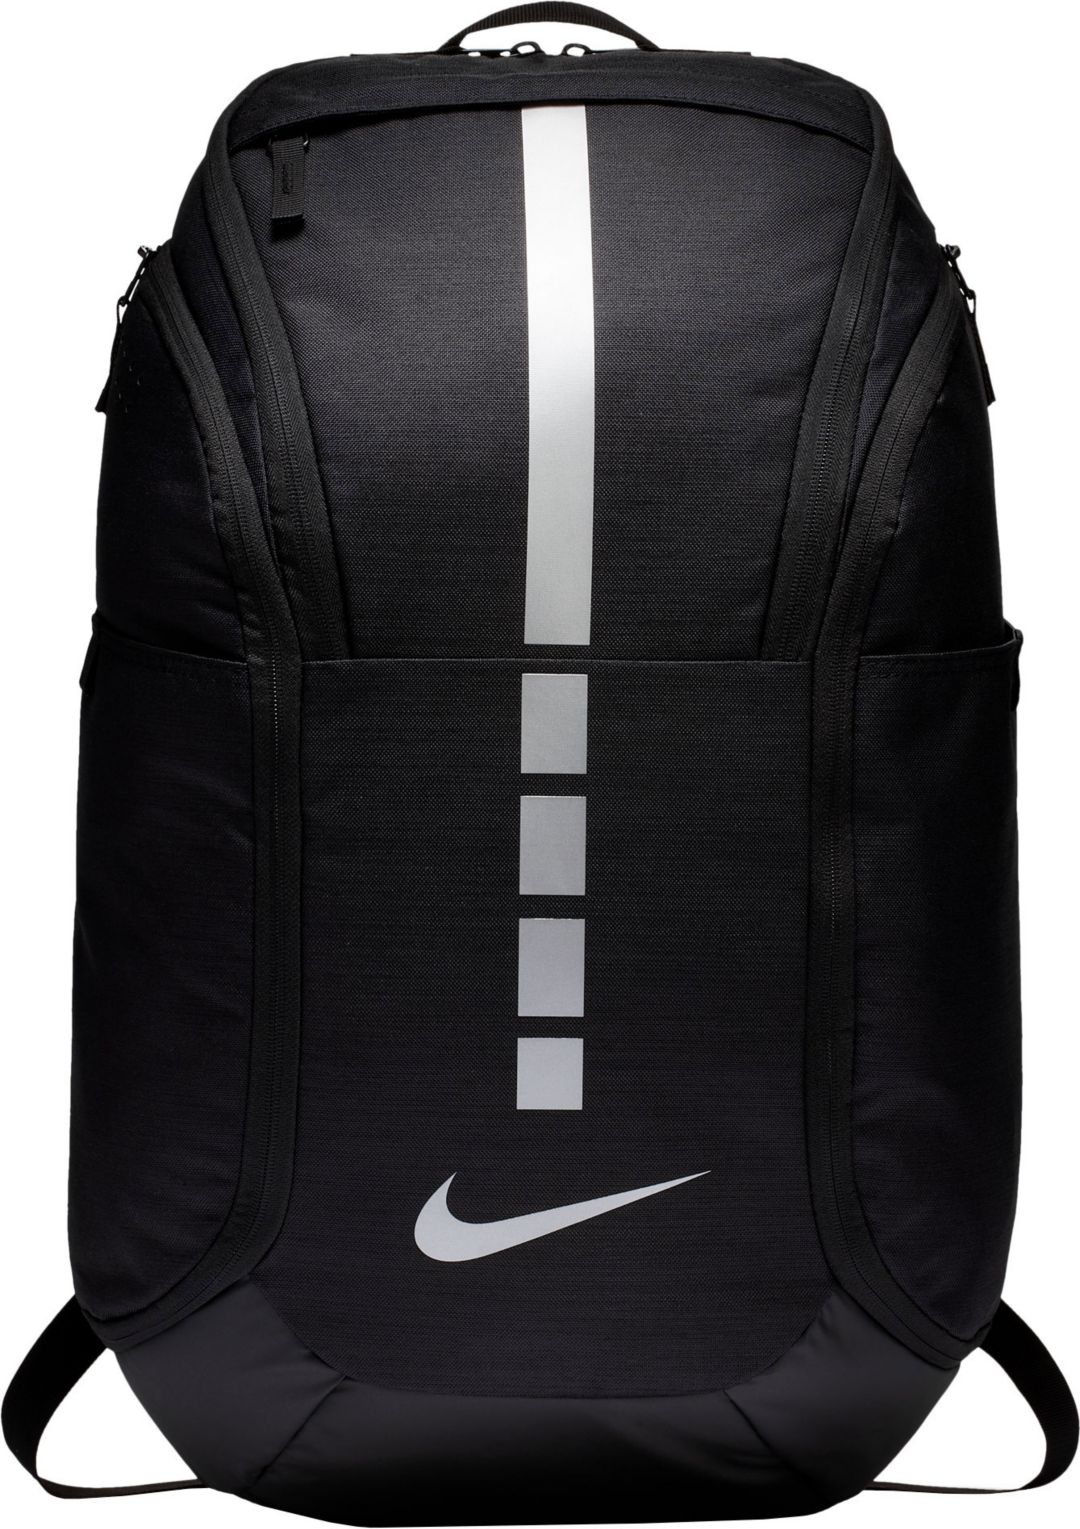 dd21dd78e4e1a Nike Elite Pro Basketball Backpack | Best Price Guarantee at DICK'S